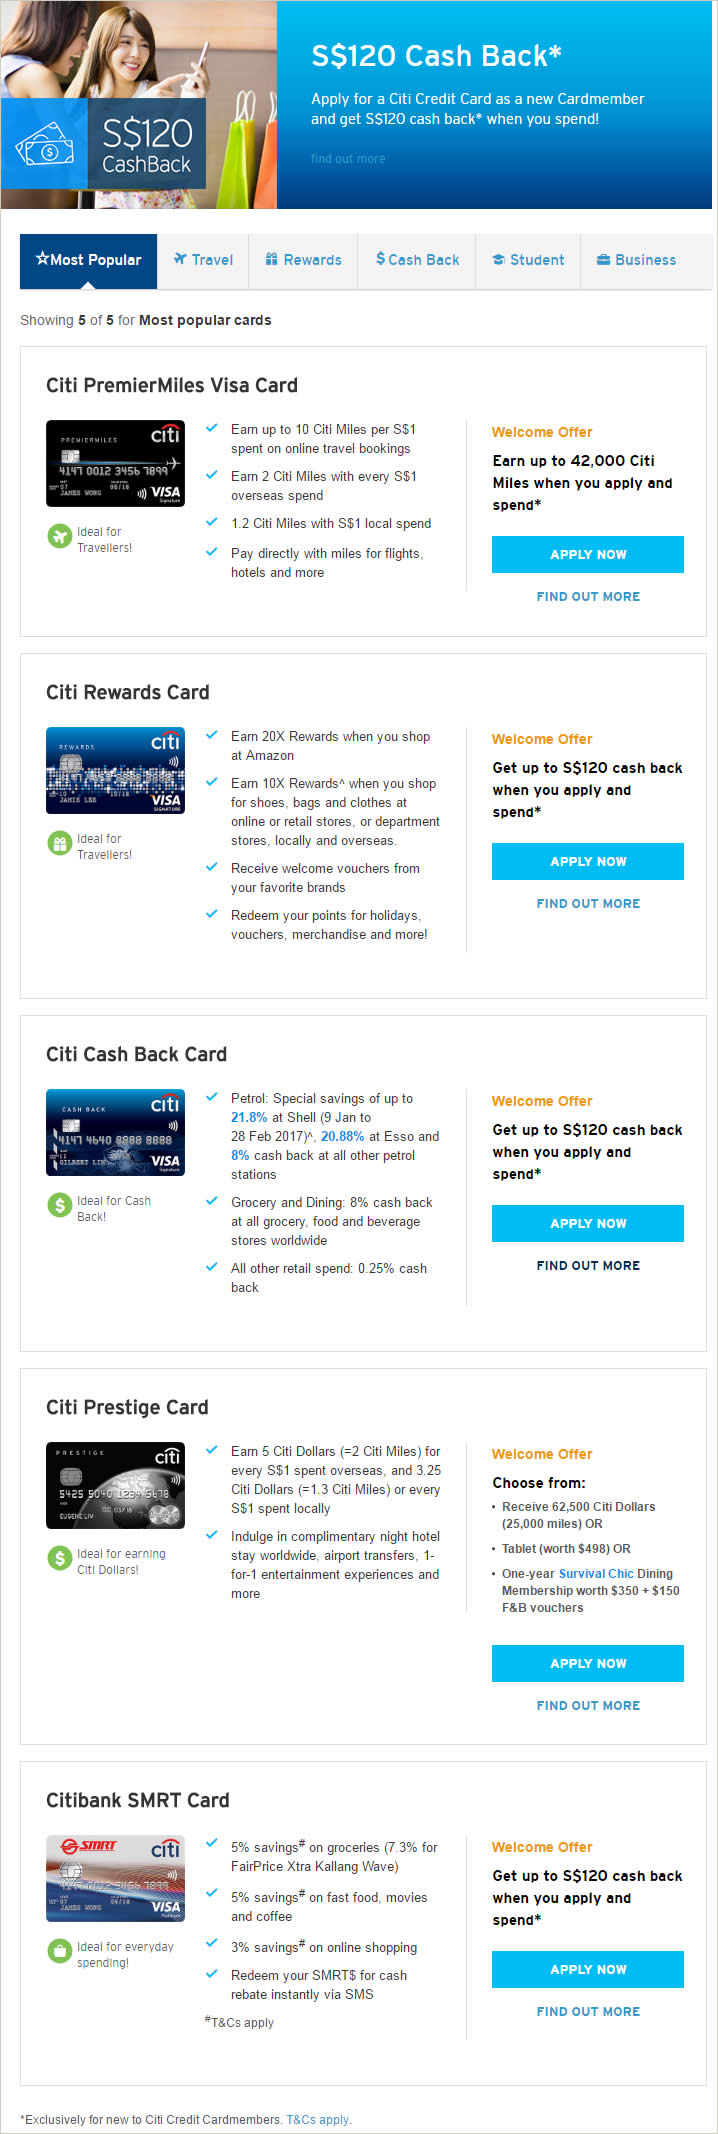 how to get noc for citibank credit card